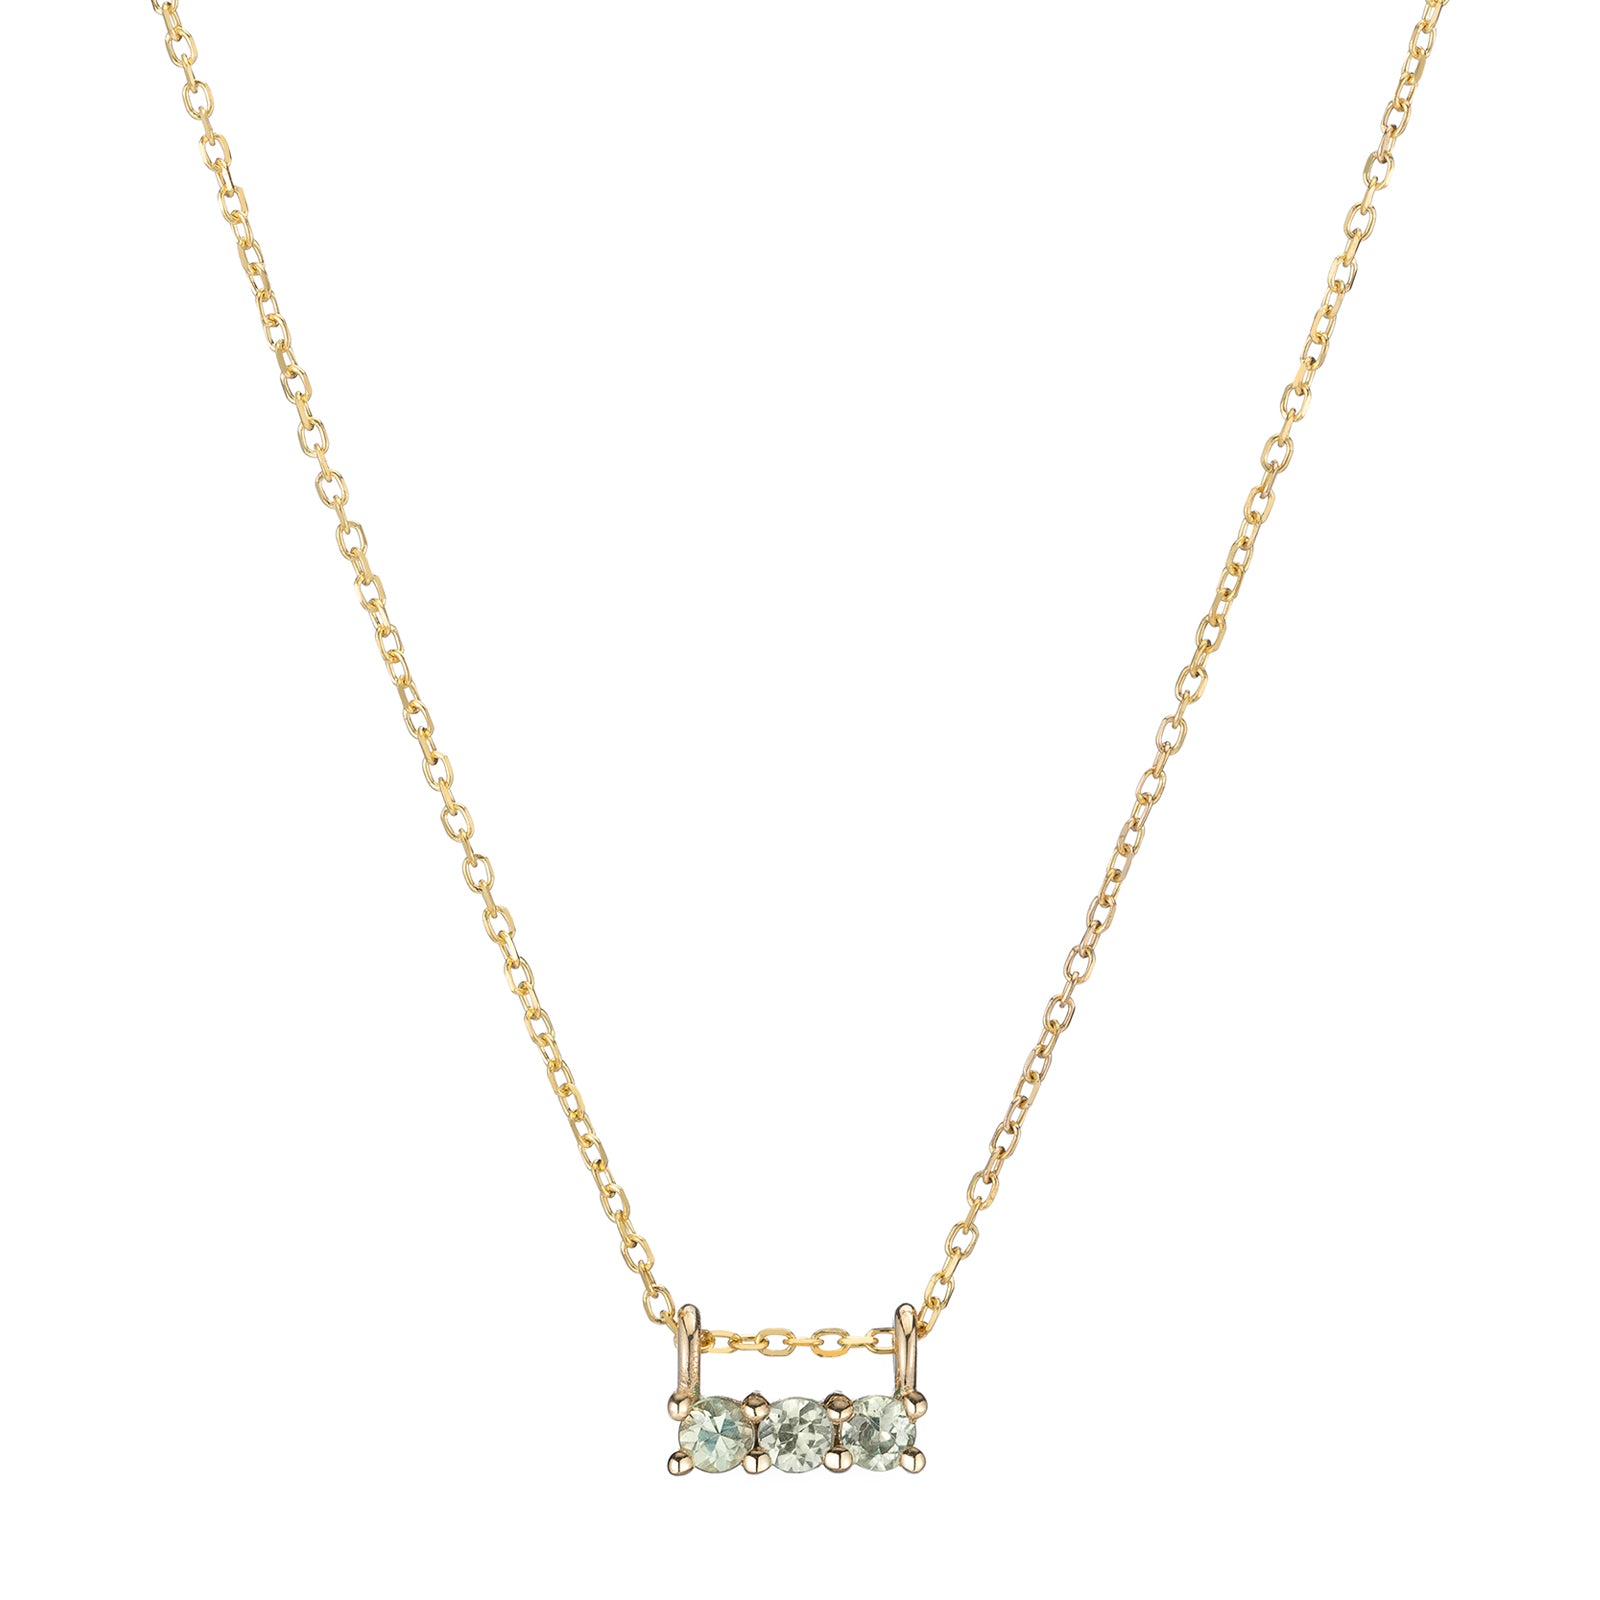 Jennie Kwon Three Stone Necklace - Green Sapphire - Necklaces - Broken English Jewelry